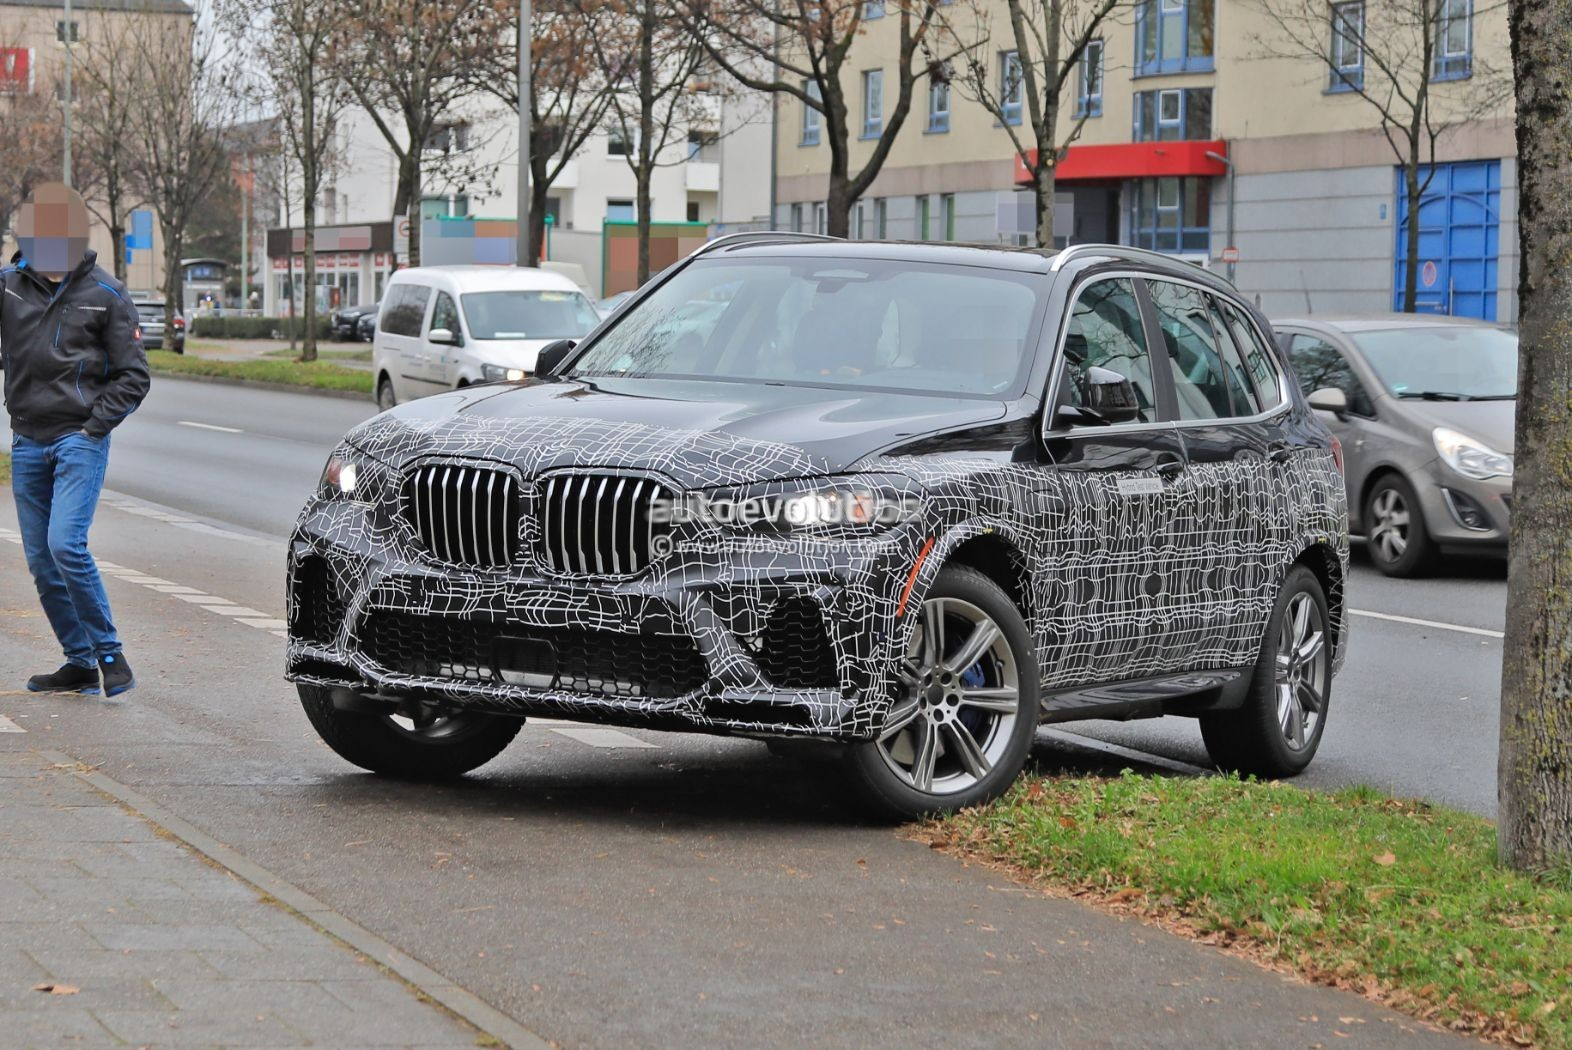 Name:  2023-bmw-x5-lci-plug-in-prototype-caught-during-delivery-152025_1.jpg Views: 22068 Size:  389.6 KB